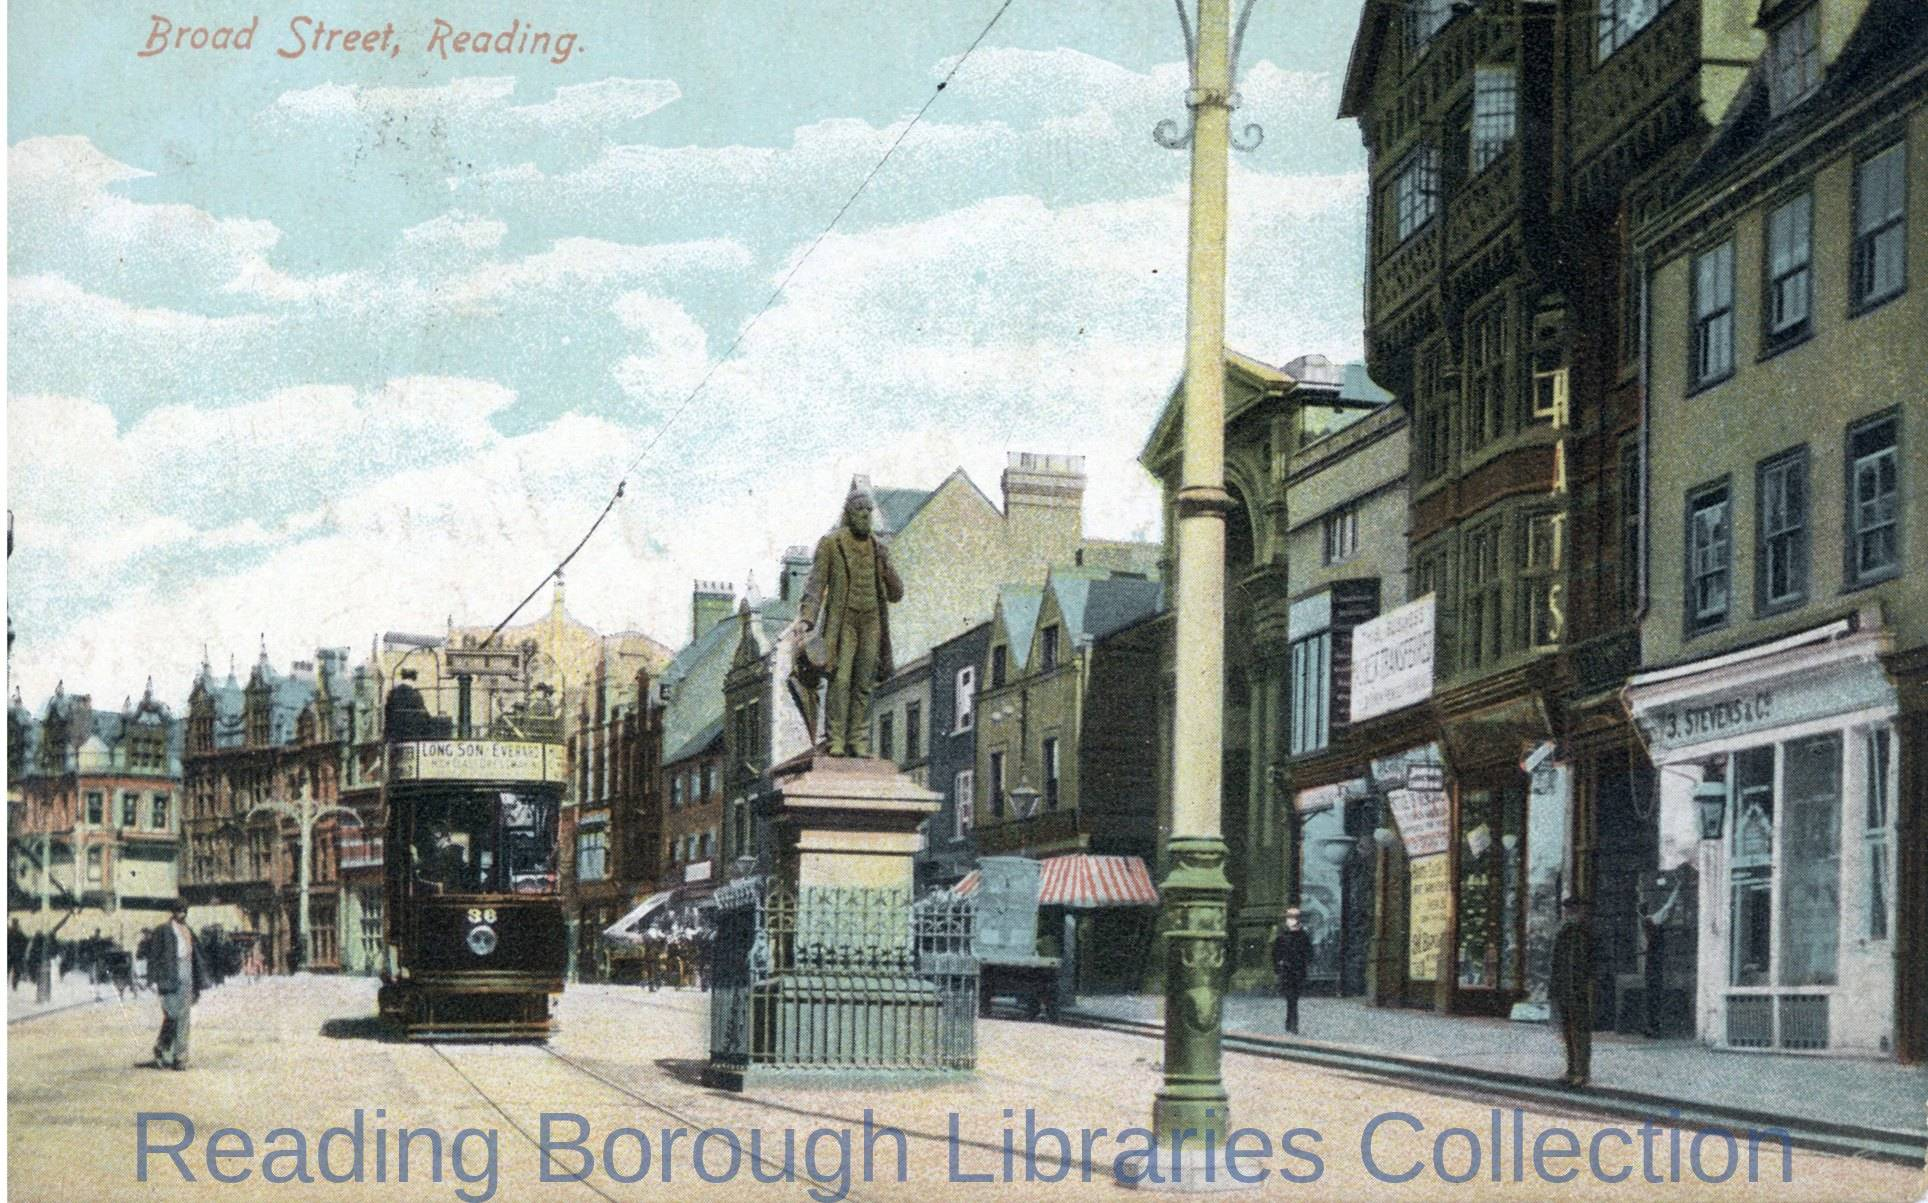 Broad Street, Reading, looking westwards, c1905. An electric tramcar heads westwards past the statue of George Palmer